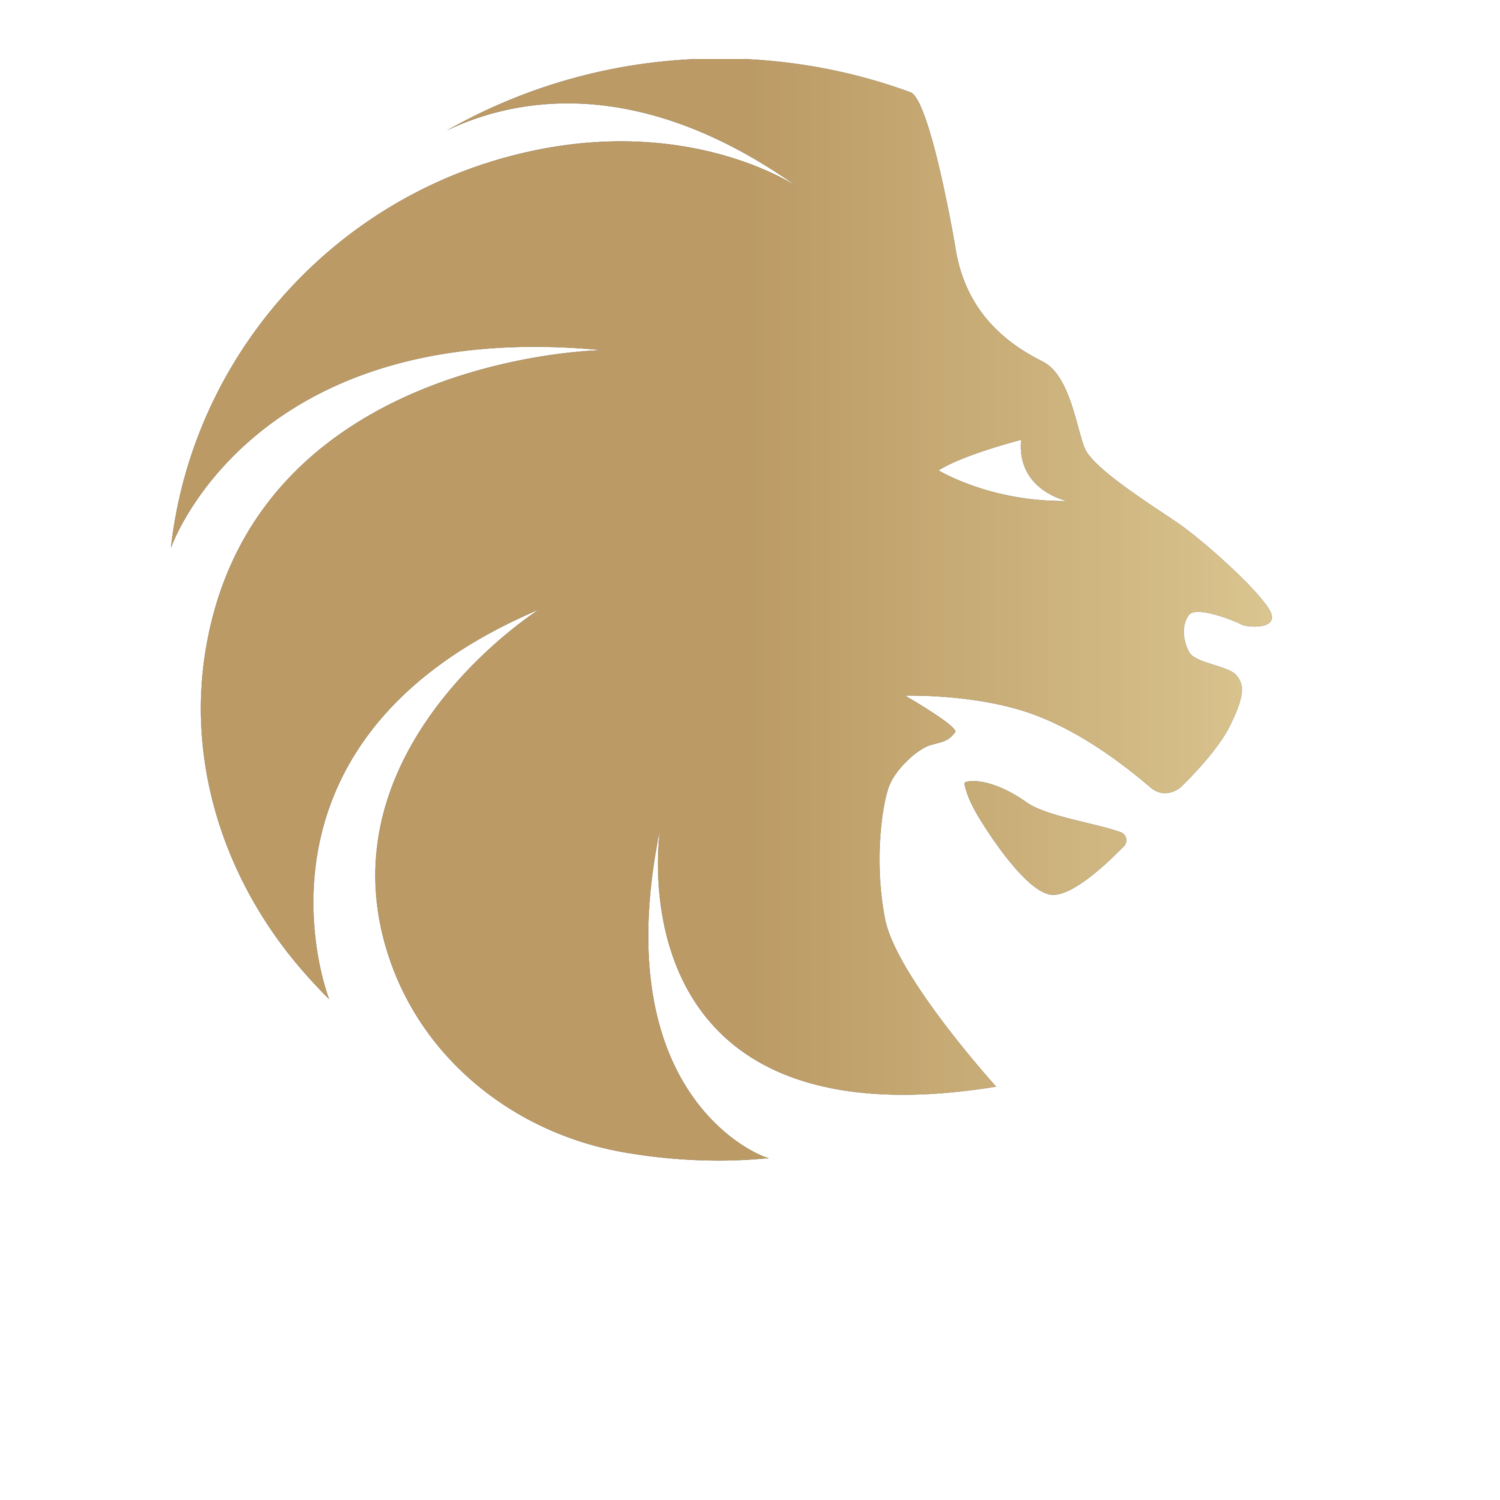 Elite Project Group